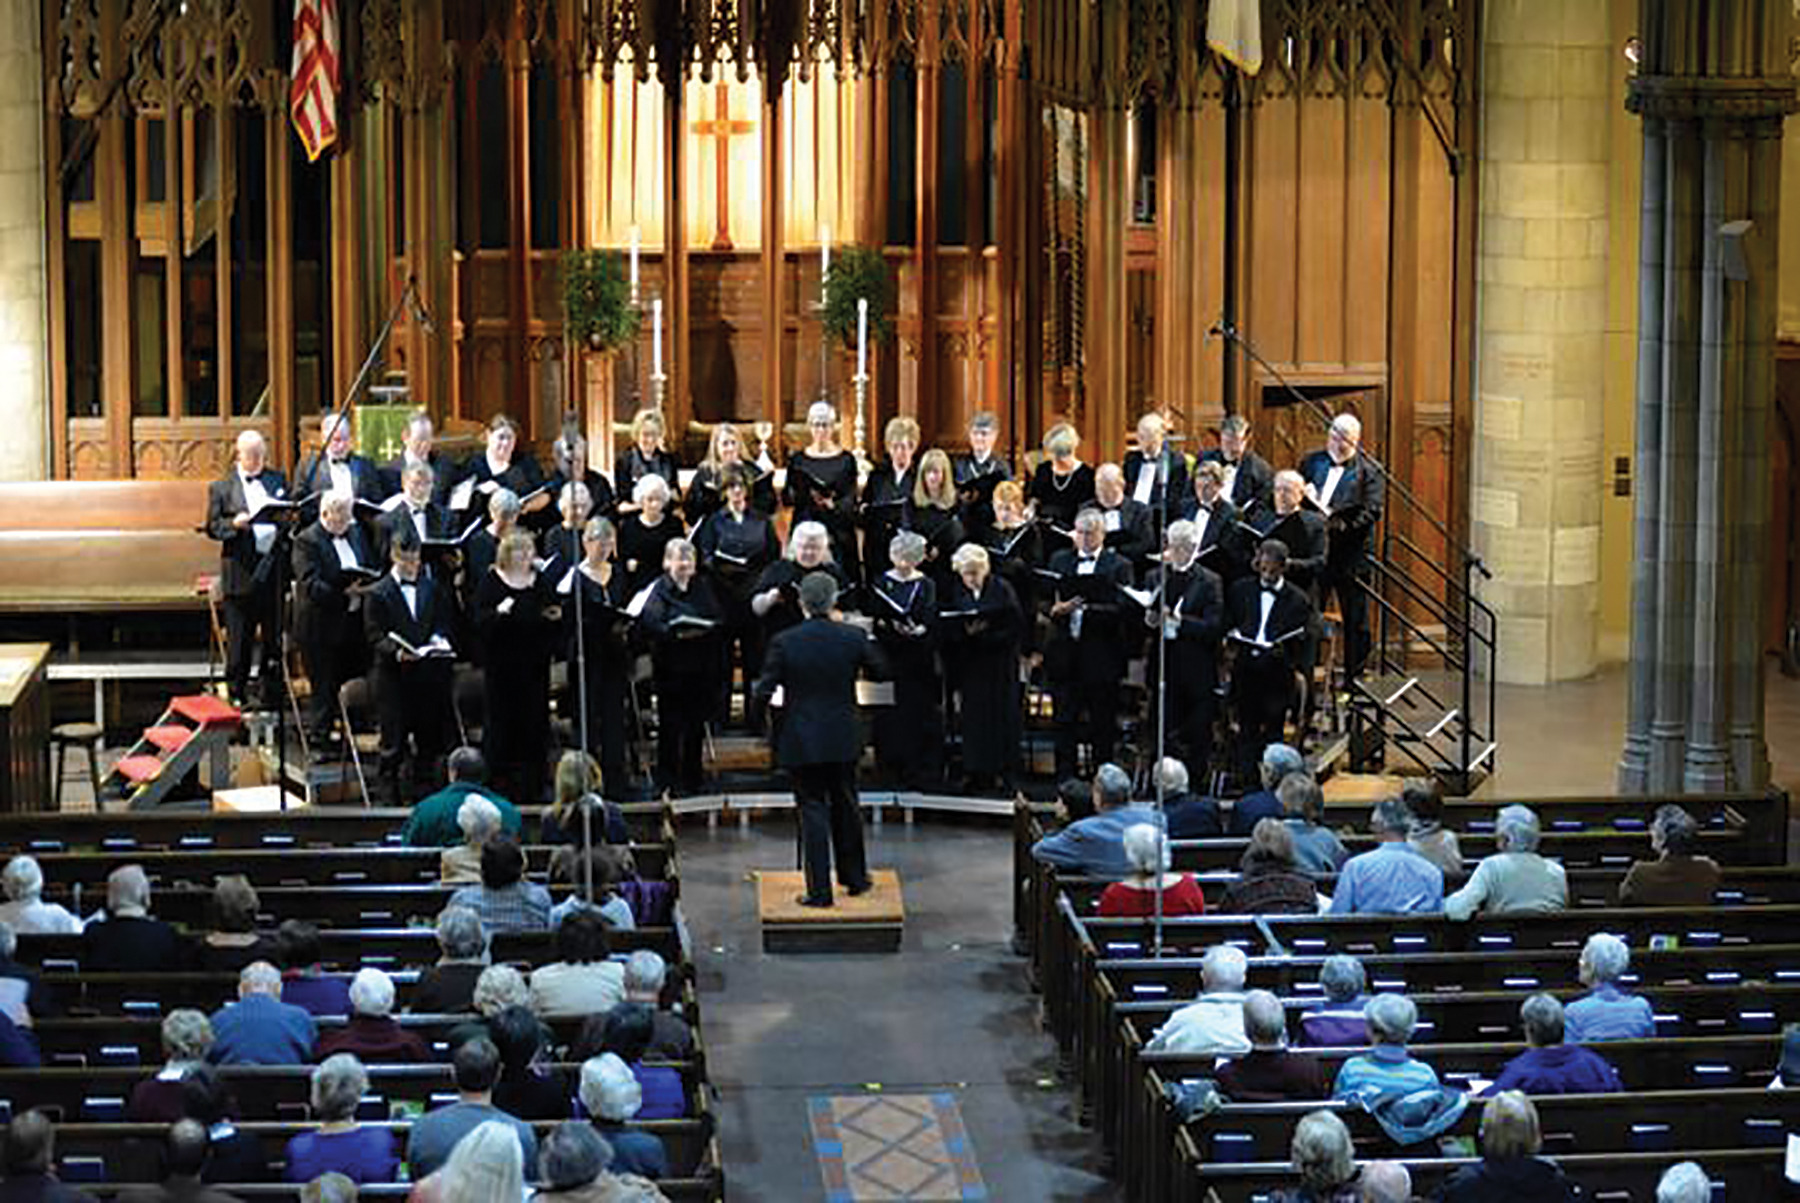 1e753243eb9c6428af60_Artistic_Director_Allen_Artz_creates_music_with_the_Choral_Society_in_beautiful_Crescent_Avenue_Church.jpg